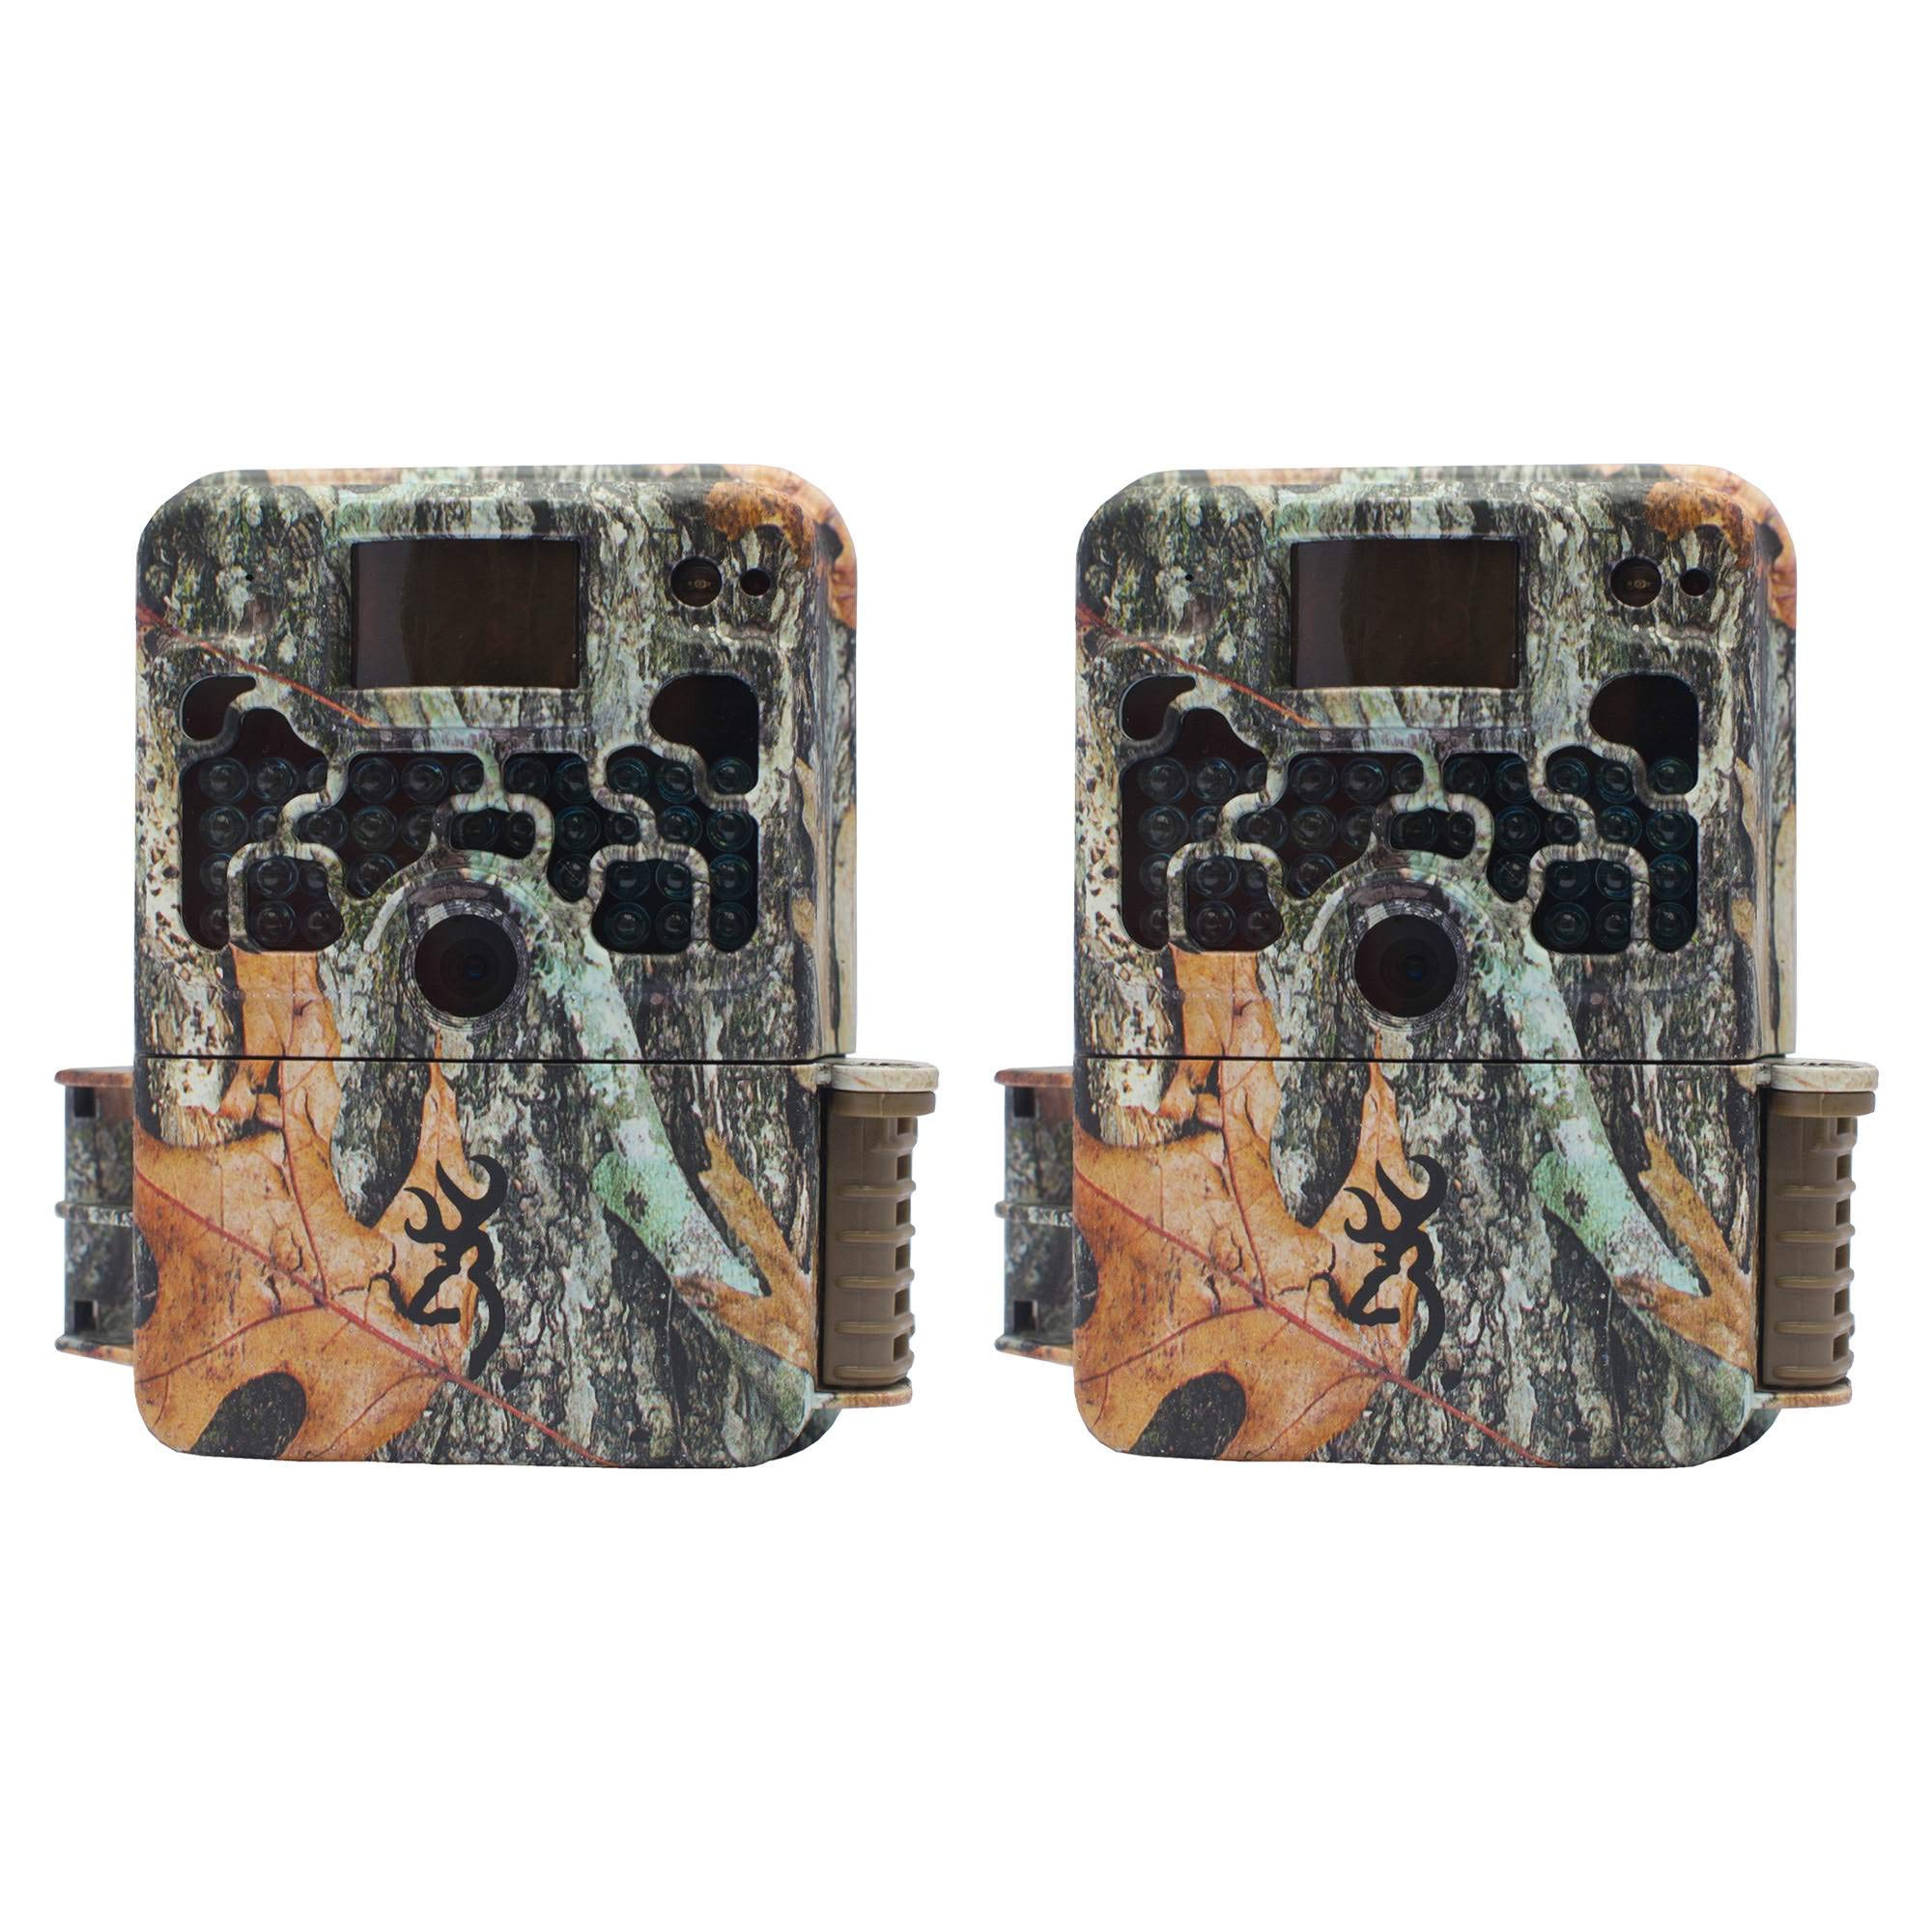 (2) Browning STRIKE FORCE HD 850 Micro Trail Game Camera (16MP) | BTC5HD850 by Browning Trail Cameras